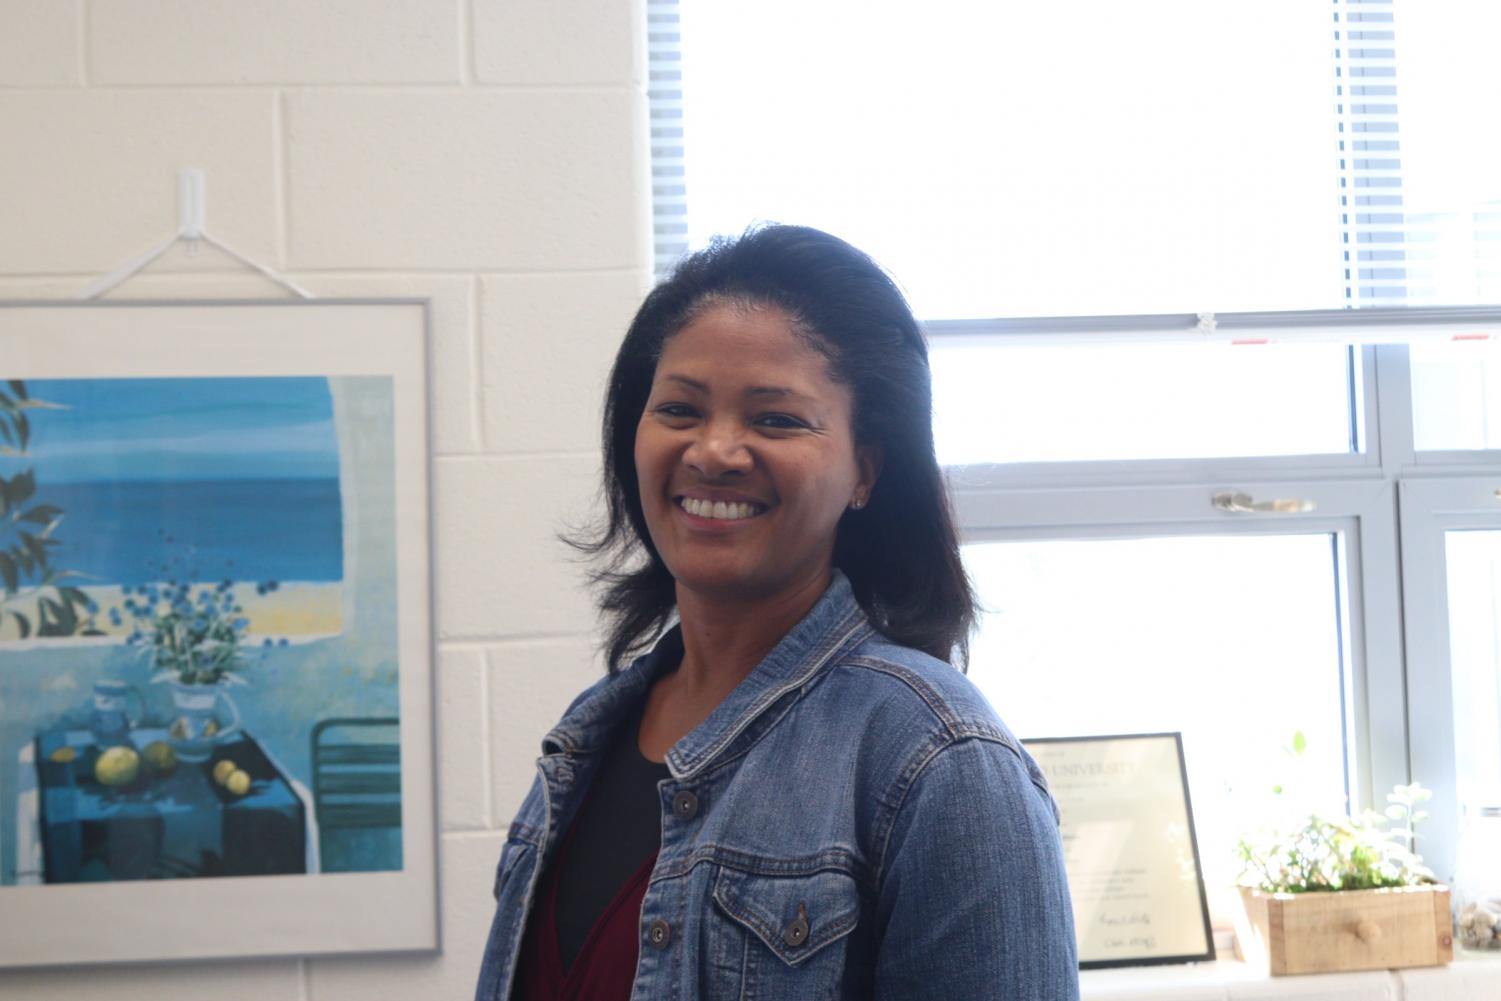 """Mrs. Phelps is a welcoming presence for any students who need advice or a person to talk to. She lacked guidance from her high school counselor and aims to use her experience to help others. """"I just have a love of helping people,"""" Phelps said."""